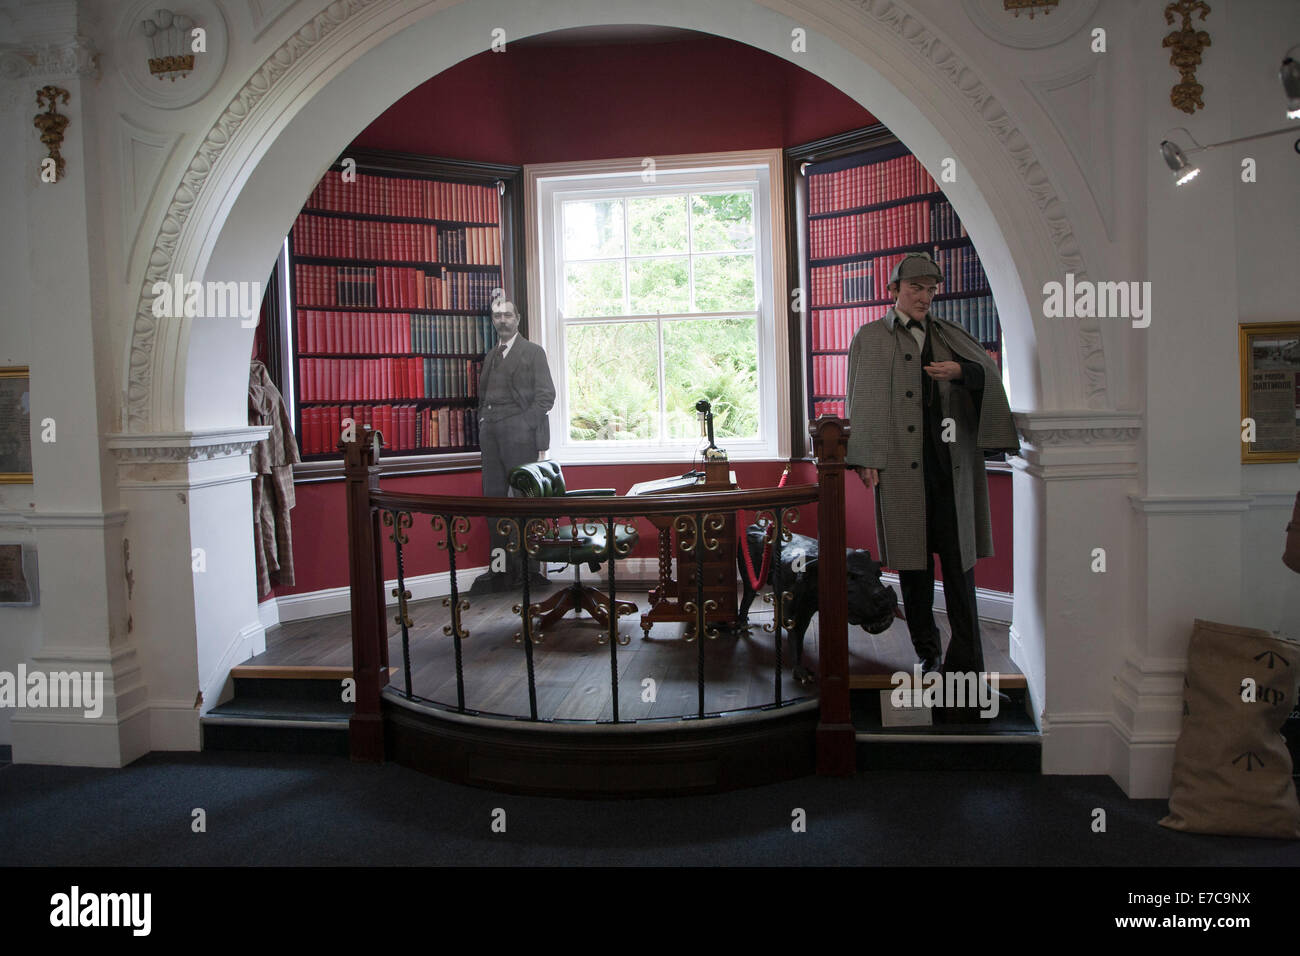 Writer Sir Arthur Conan Doyle and his fictional detective Sherlock Holmes display in Dartmoor national park visitor - Stock Image